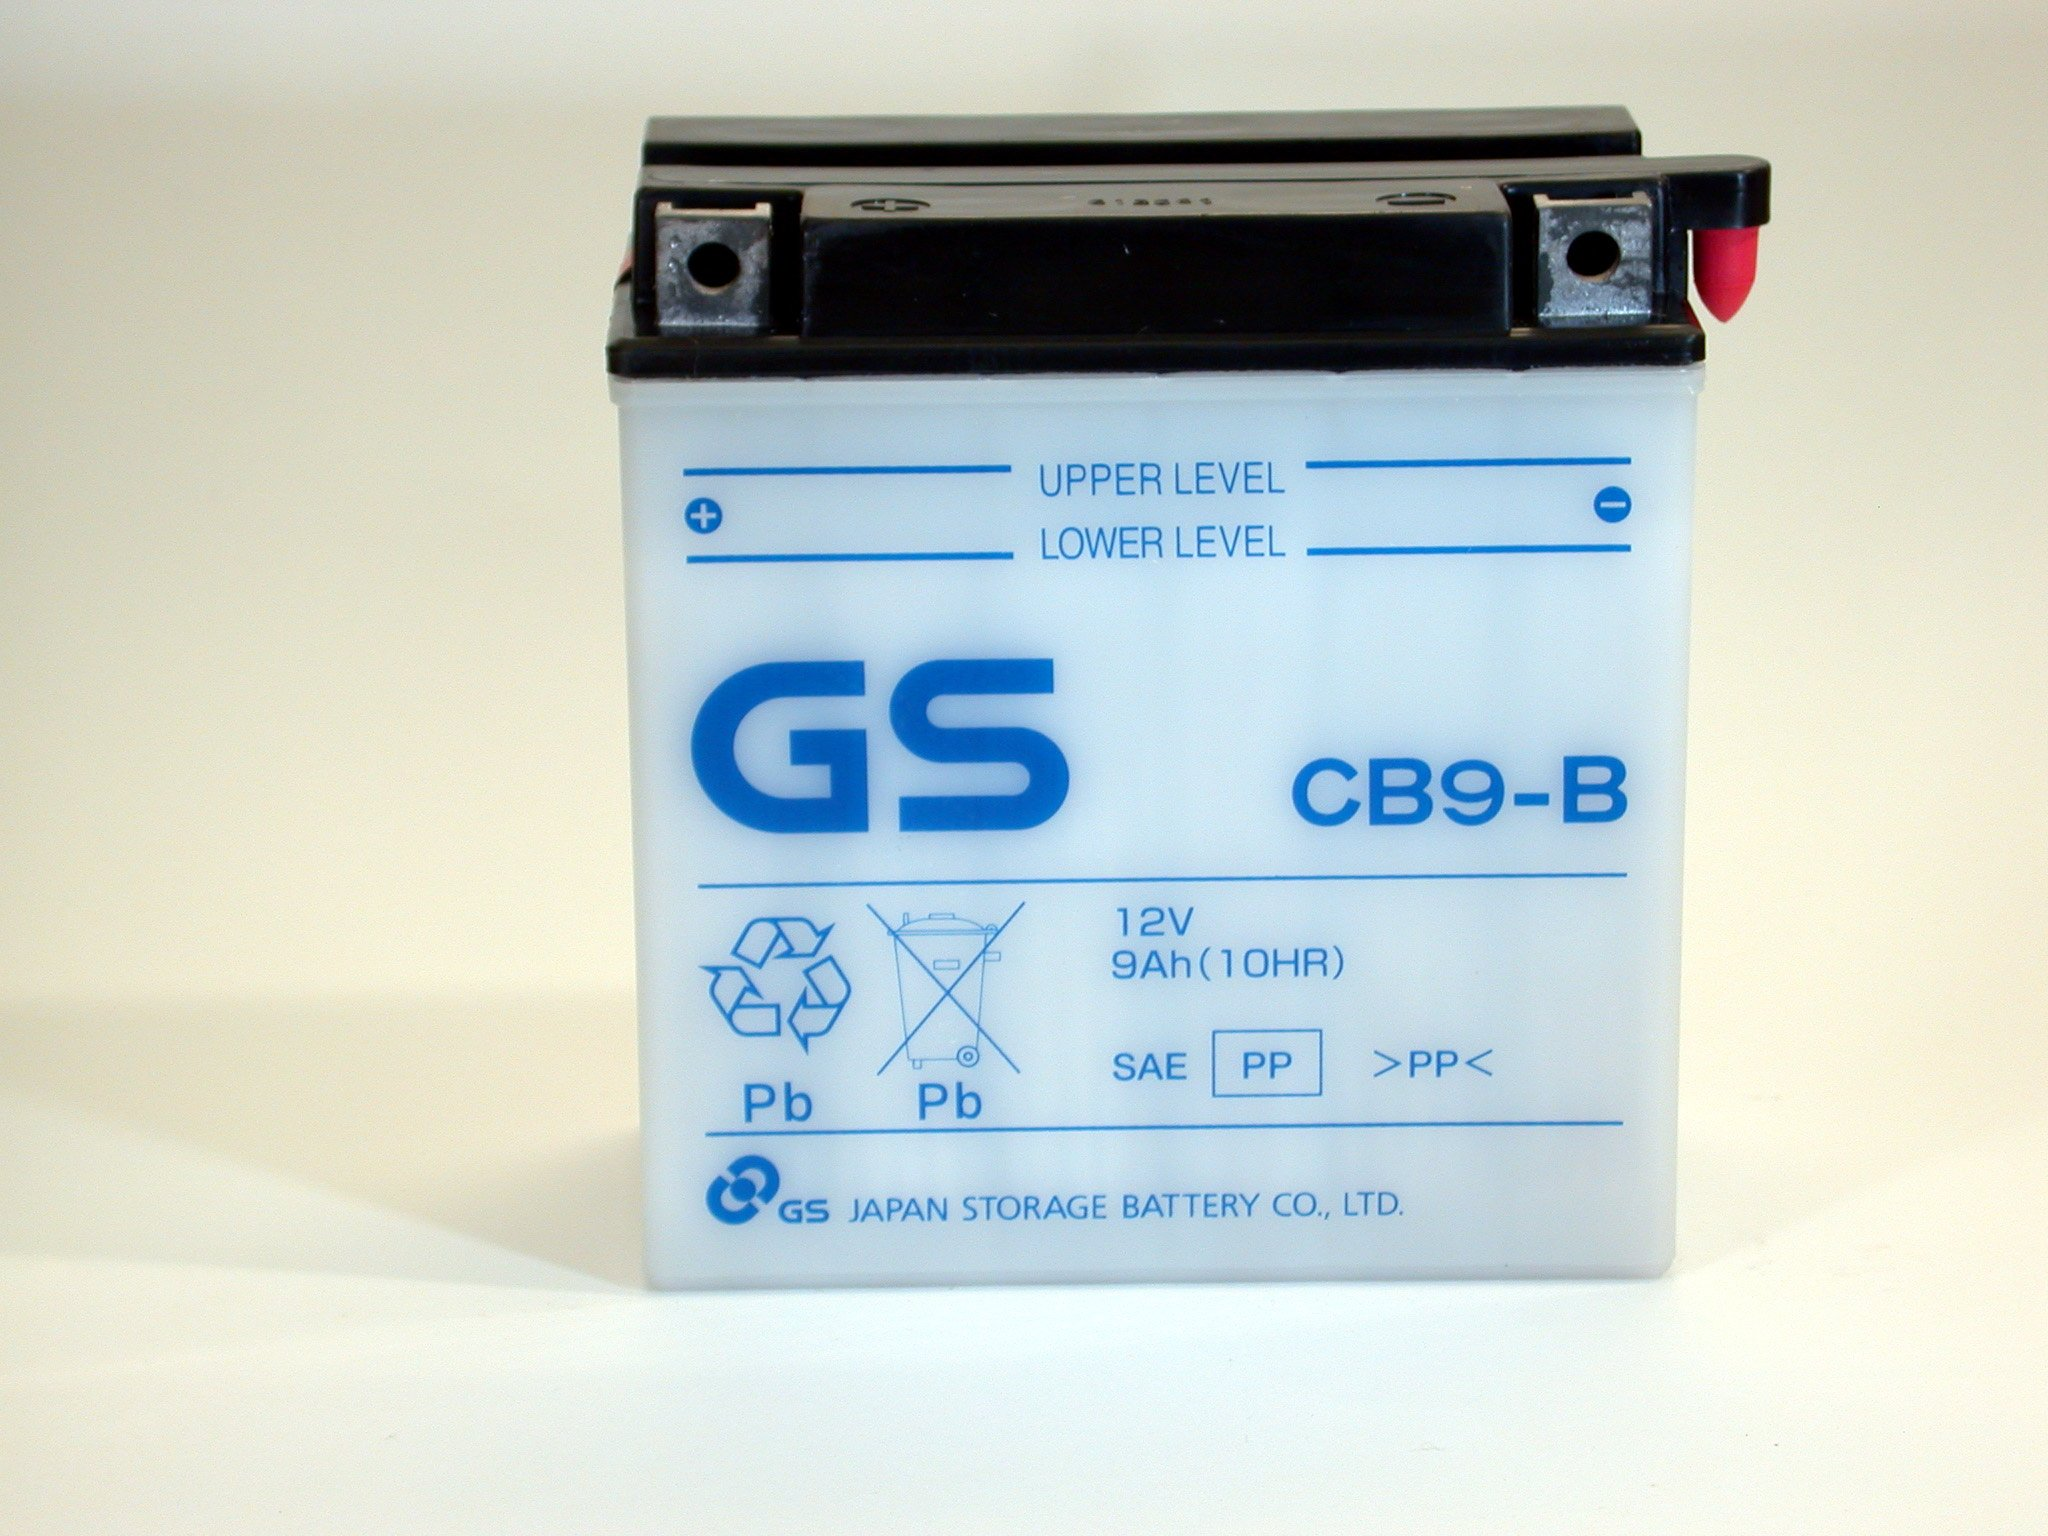 CB9-B with Acid Pack by GS BATTERY, a subsidiary of GS YUASA; The World's Leading Manufacturer of Powersports Batteries